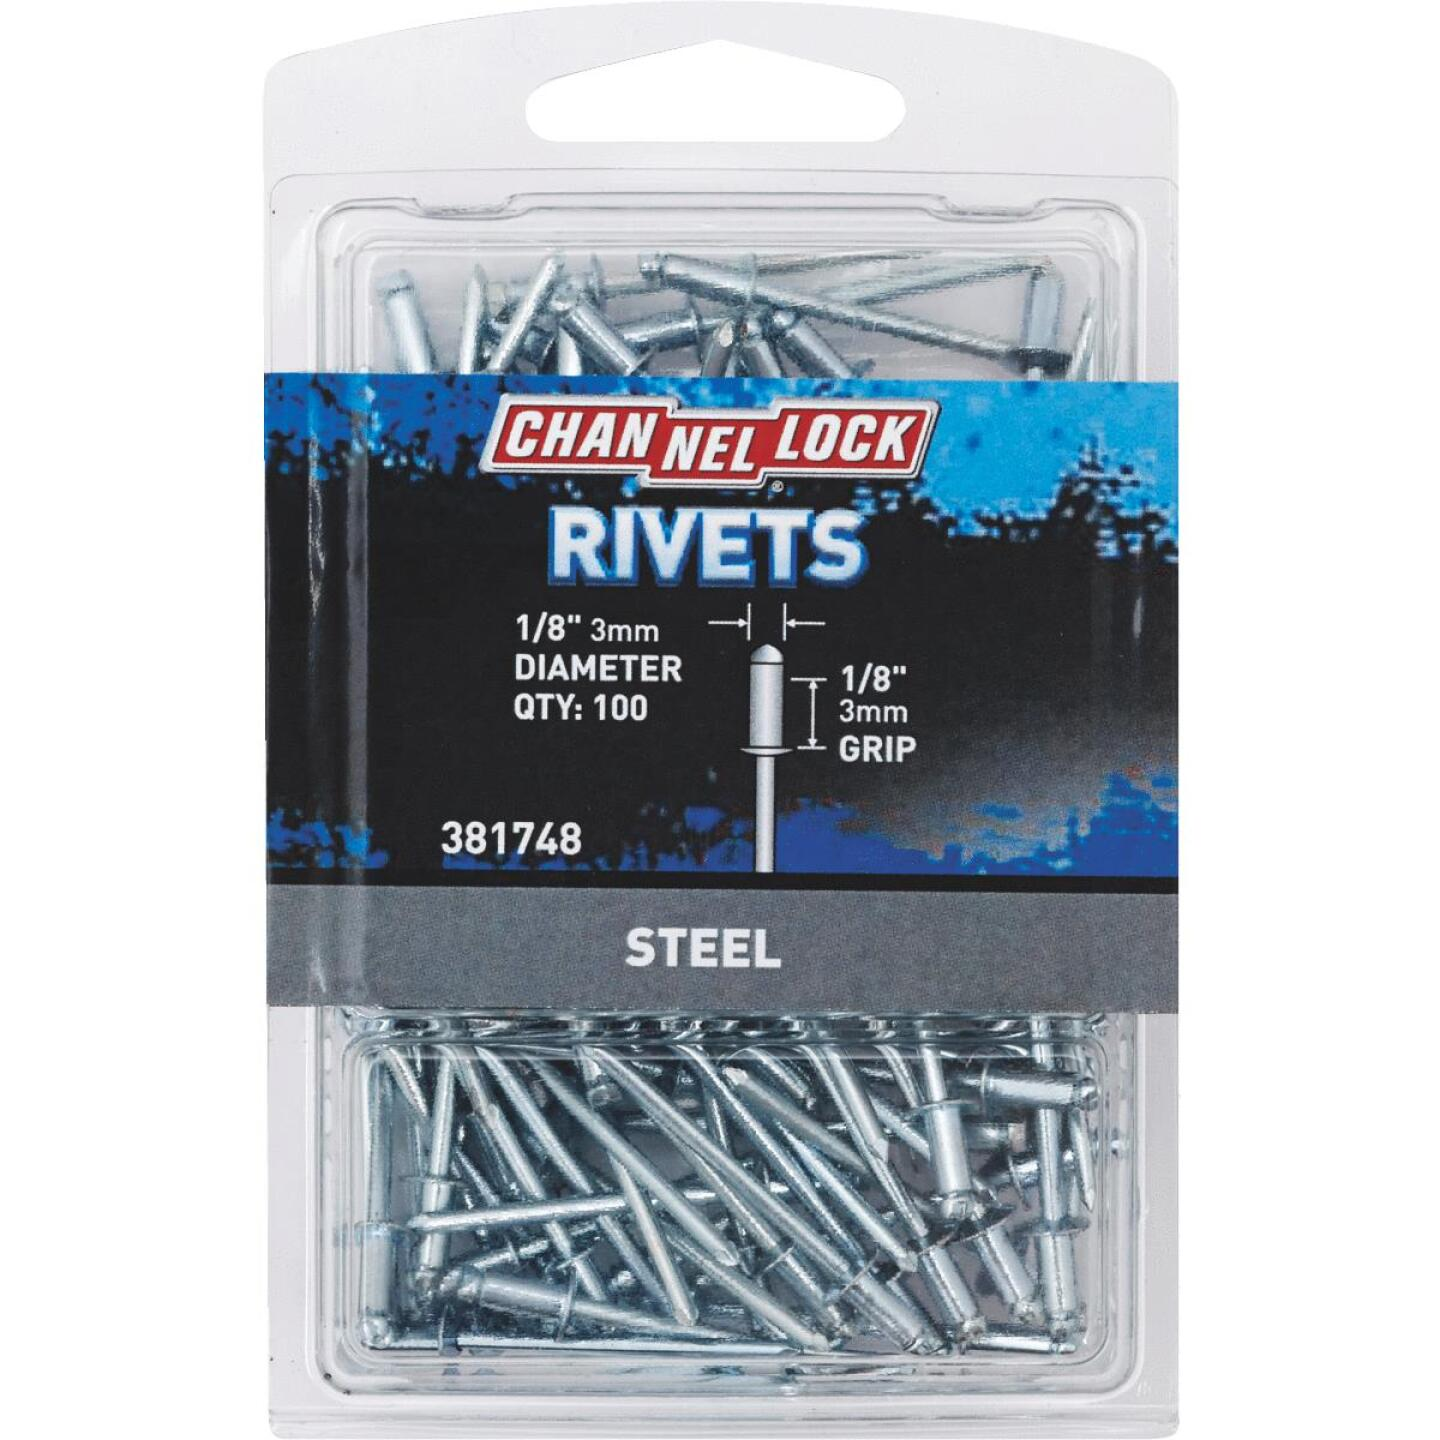 Channellock 1/8 In. Dia. x 1/8 In. Grip Steel Multigrip POP Rivet (100-Pack) Image 1